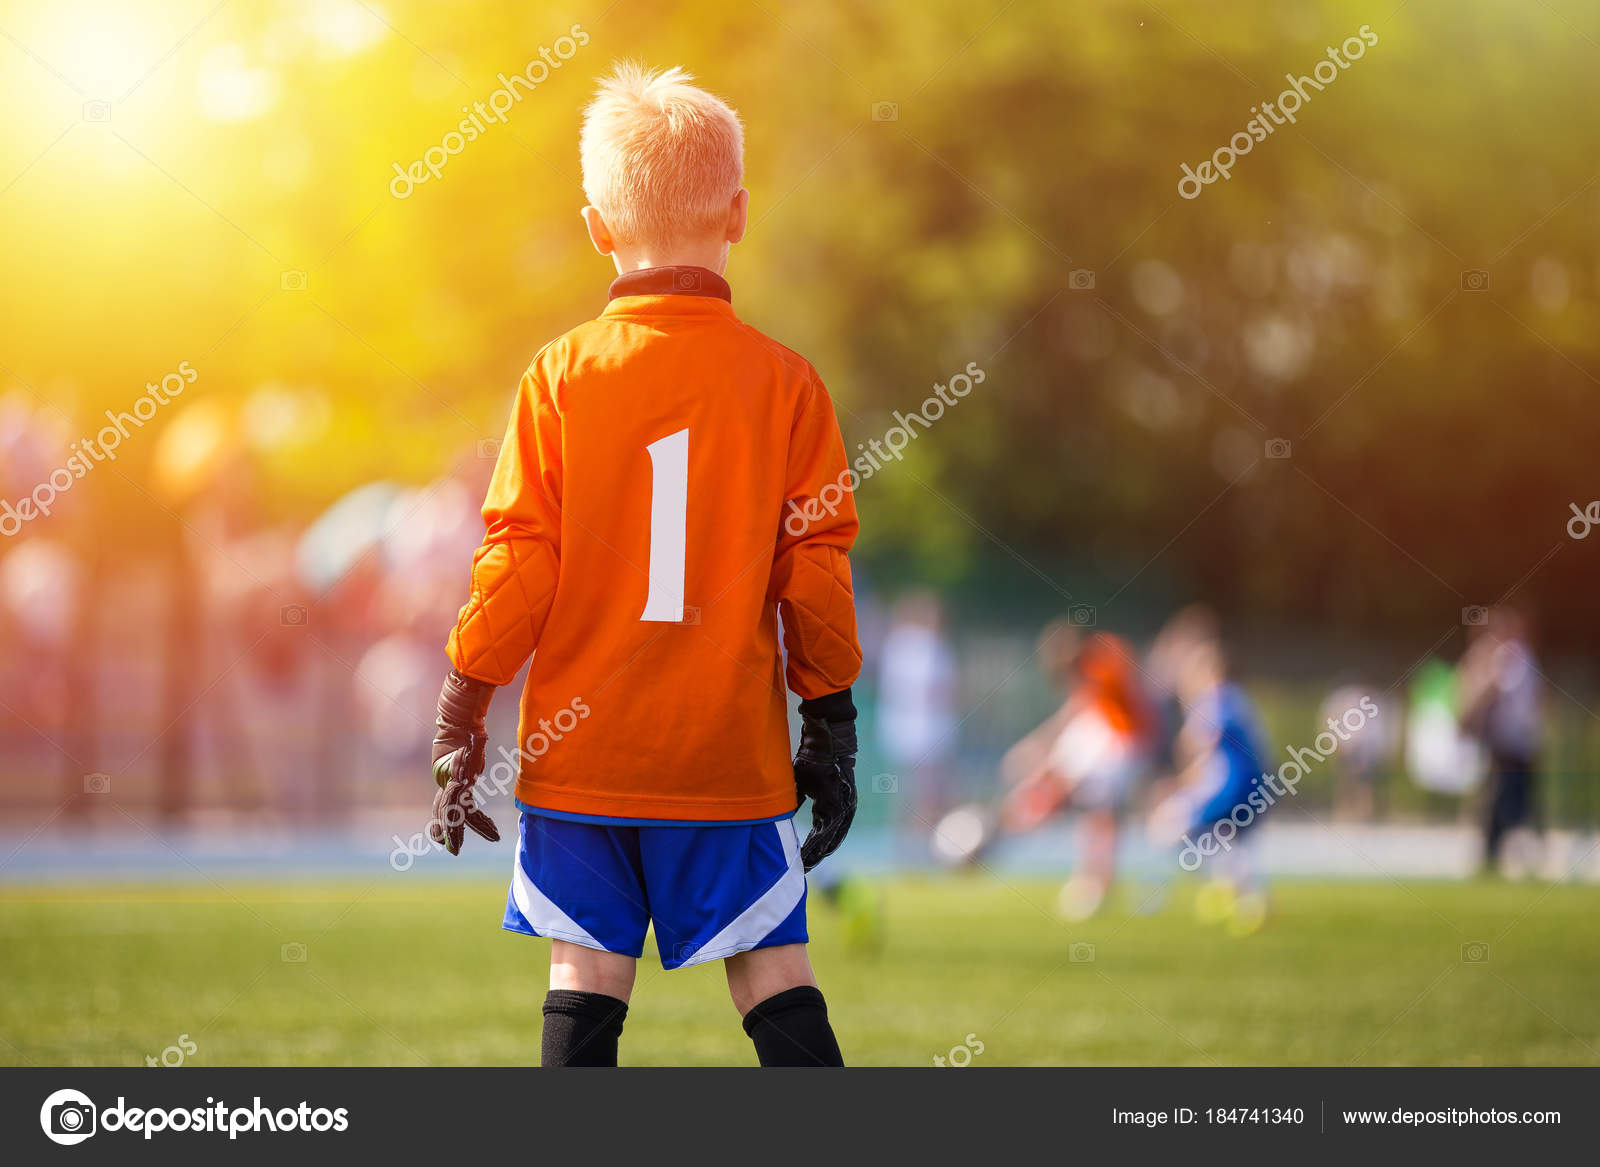 Young Soccer Goalie Goalkeeper Young Boy Soccer Goalie Soccer Stock Photo C Matimix 184741340